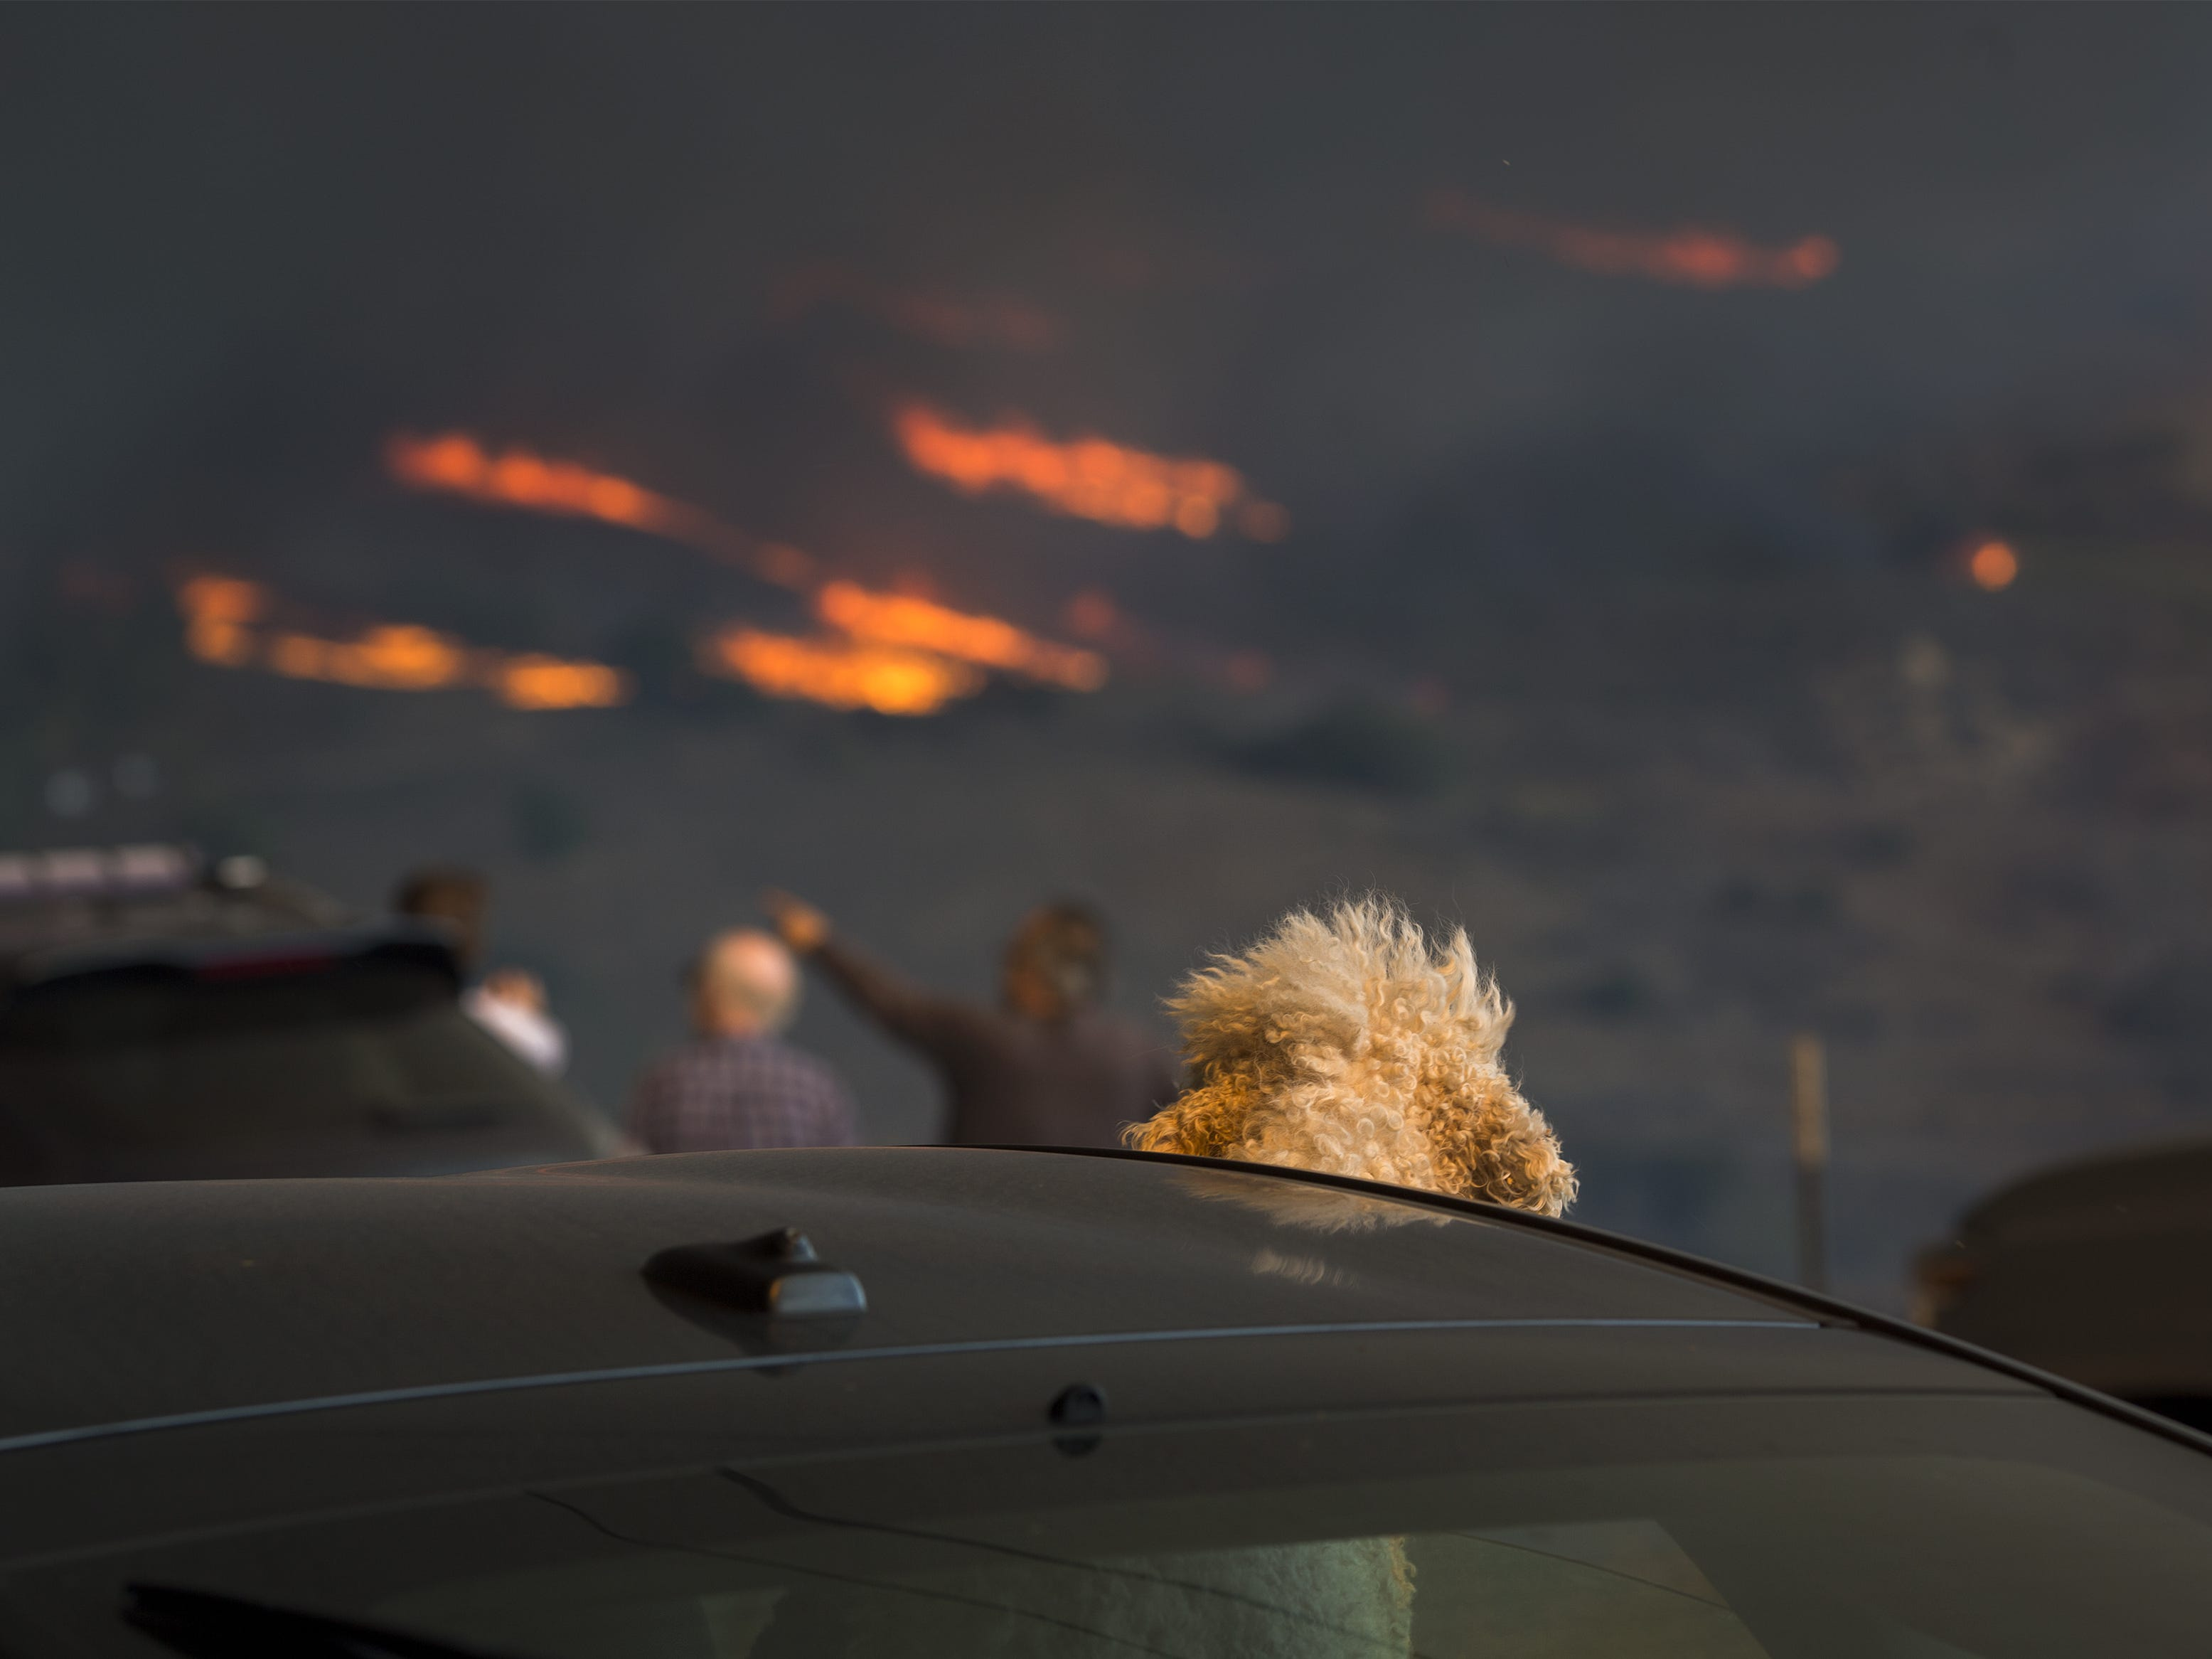 A dog watches from a car as flames approach during the Woolsey Fire, on Nov. 9, 2018 in Malibu, Calif.